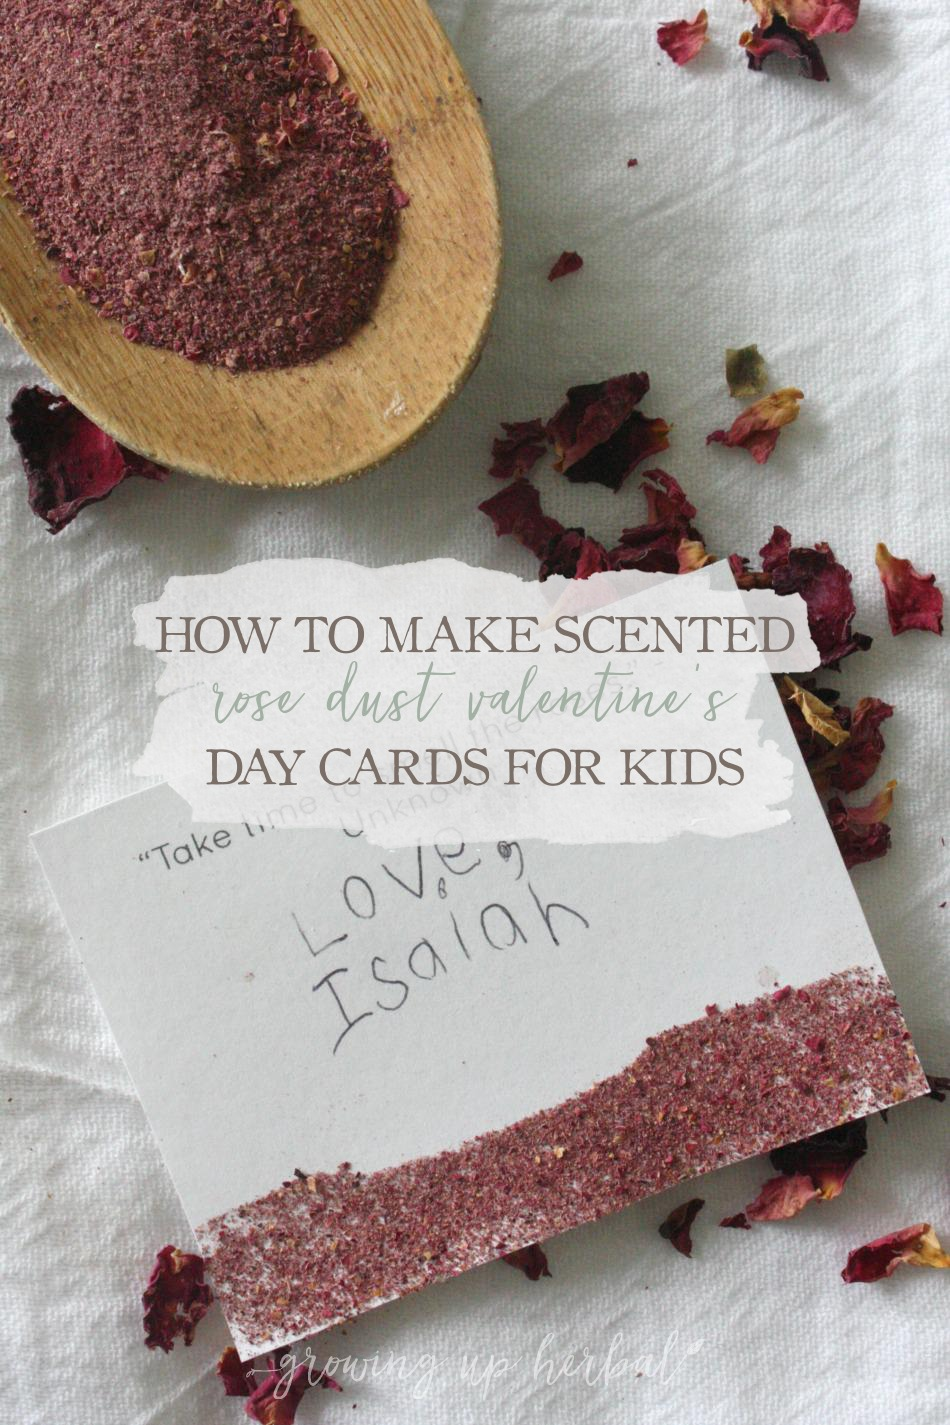 How To Make Scented Rose Dust Valentine's Day Cards For Children | Growing Up Herbal | Make DIY Valentine's Day cards with herbs and essential oils for loved ones this year!